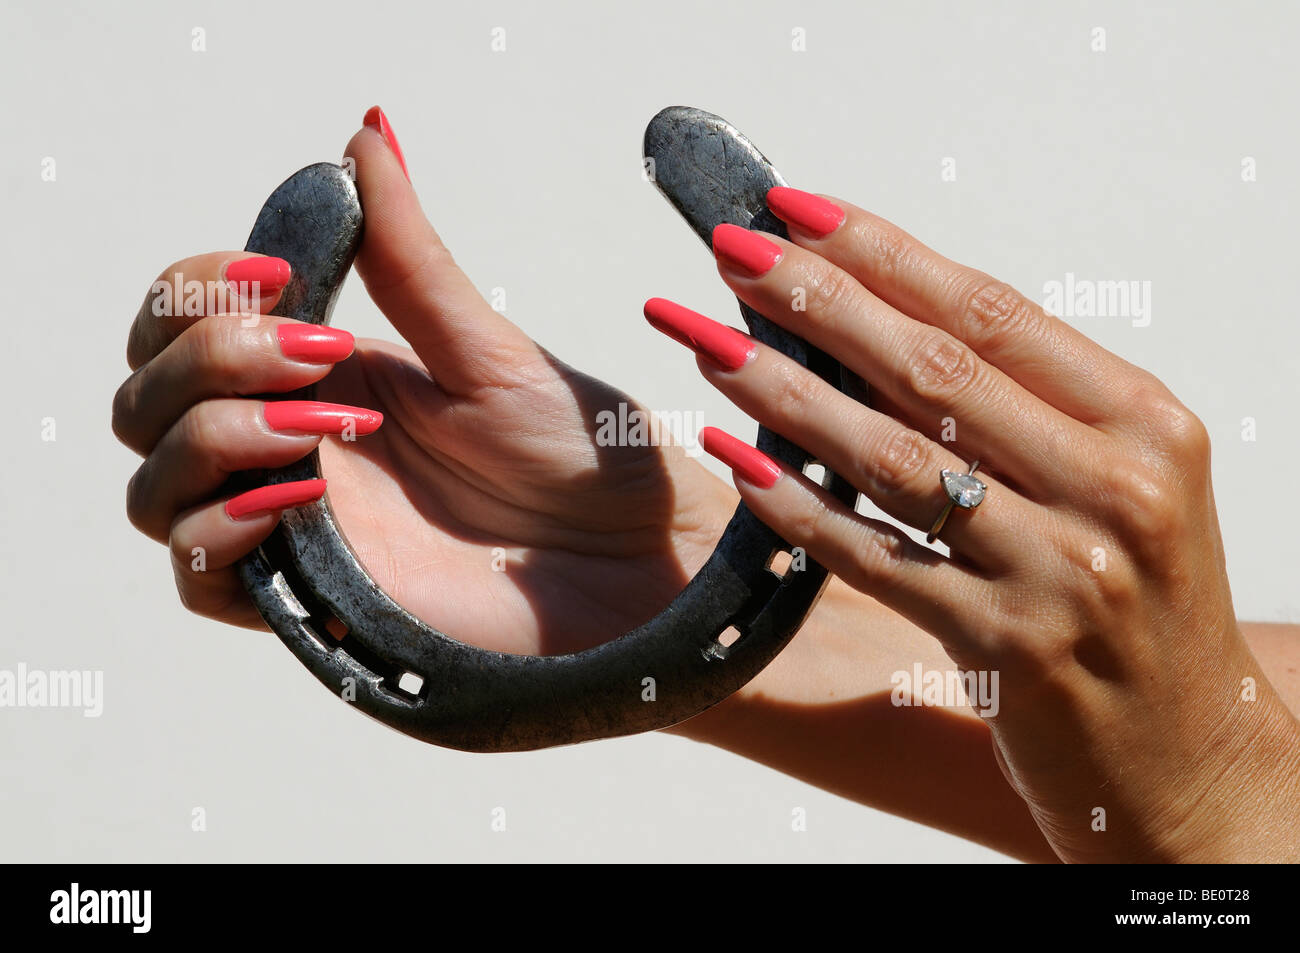 long red nails stockfotos long red nails bilder alamy. Black Bedroom Furniture Sets. Home Design Ideas